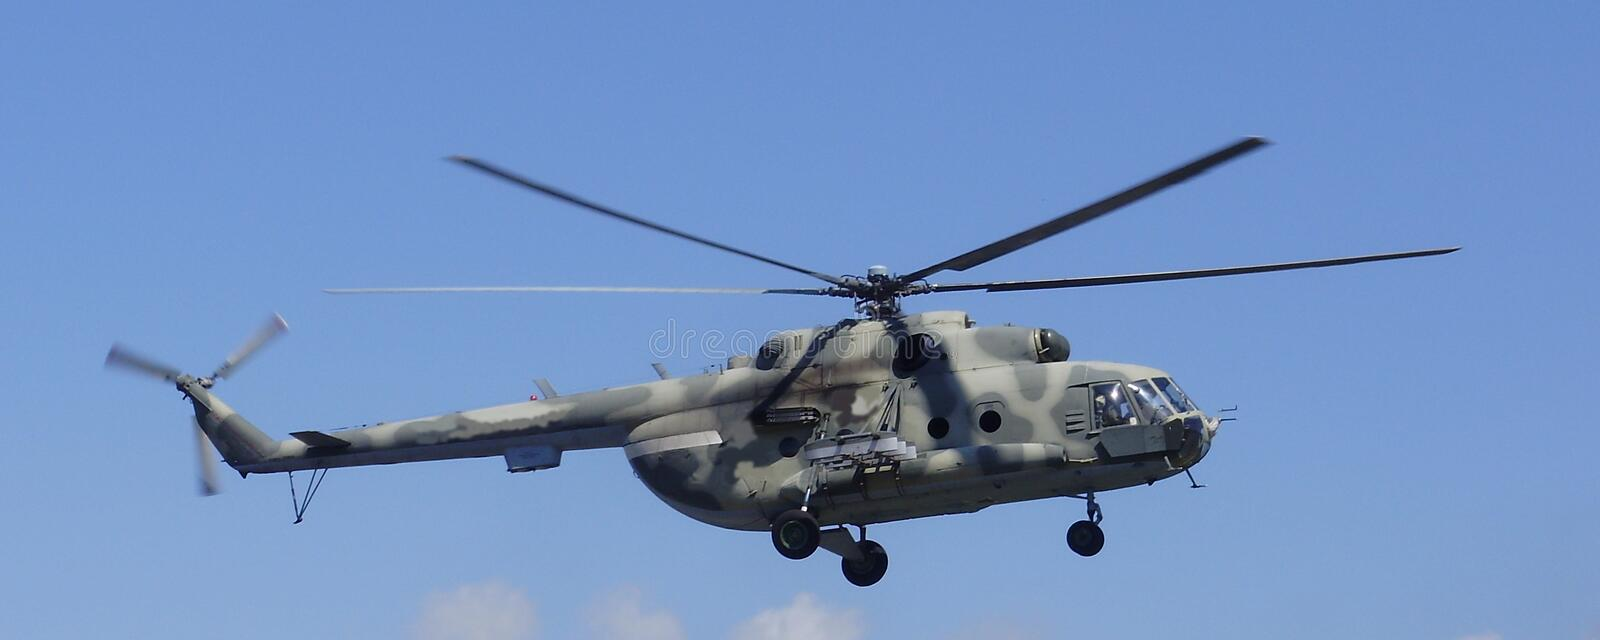 Helicopter MI-8 in the sky royalty free stock image